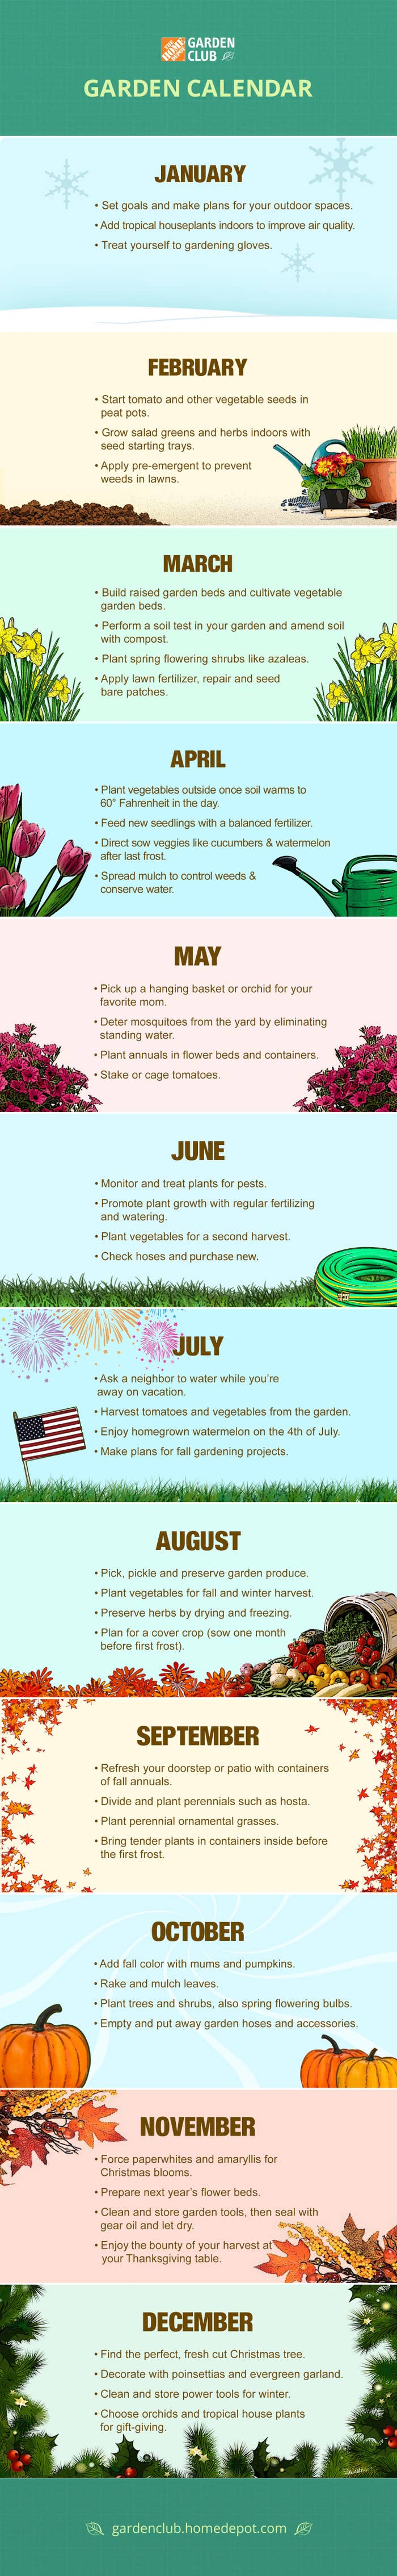 Check out this article by Home Depot to learn more about the best time to plant all your veggies.